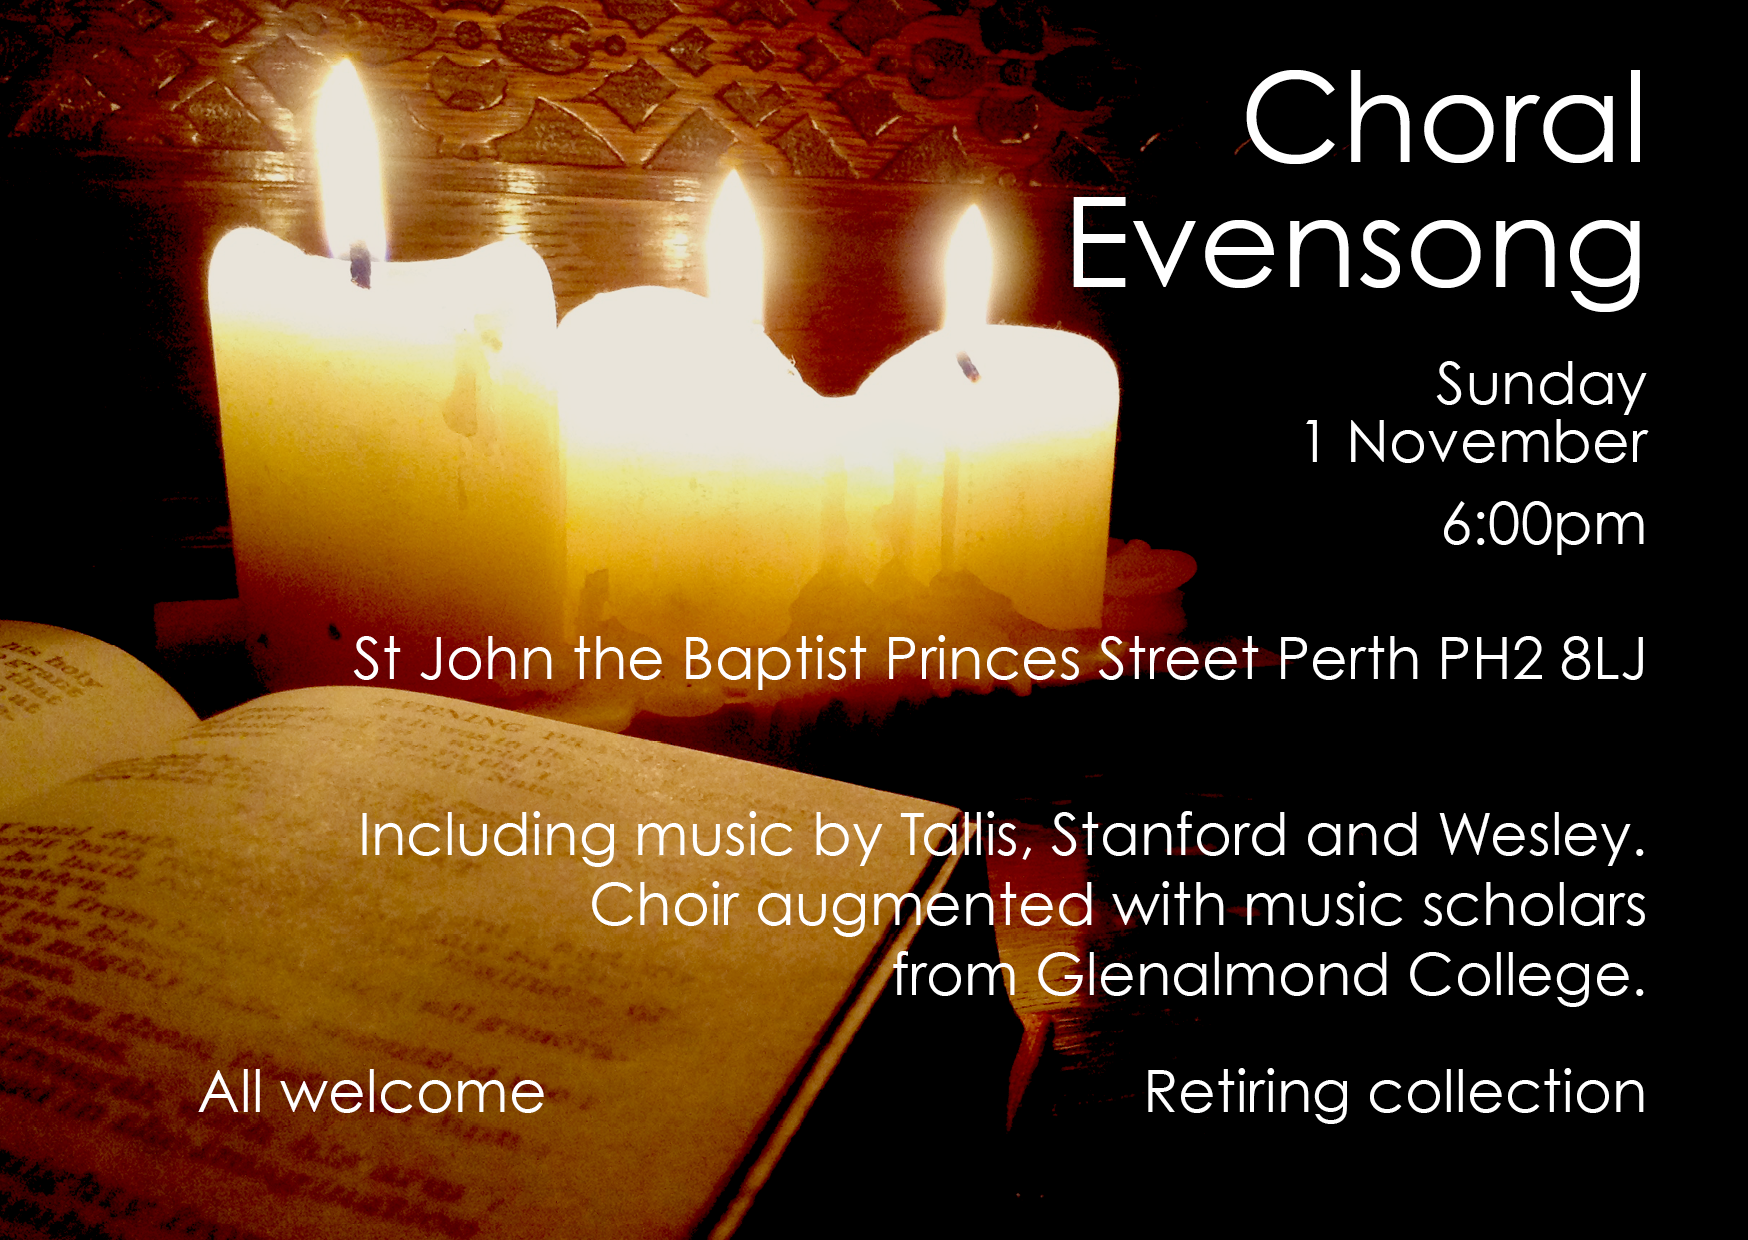 choral-evensong-06112015-fb